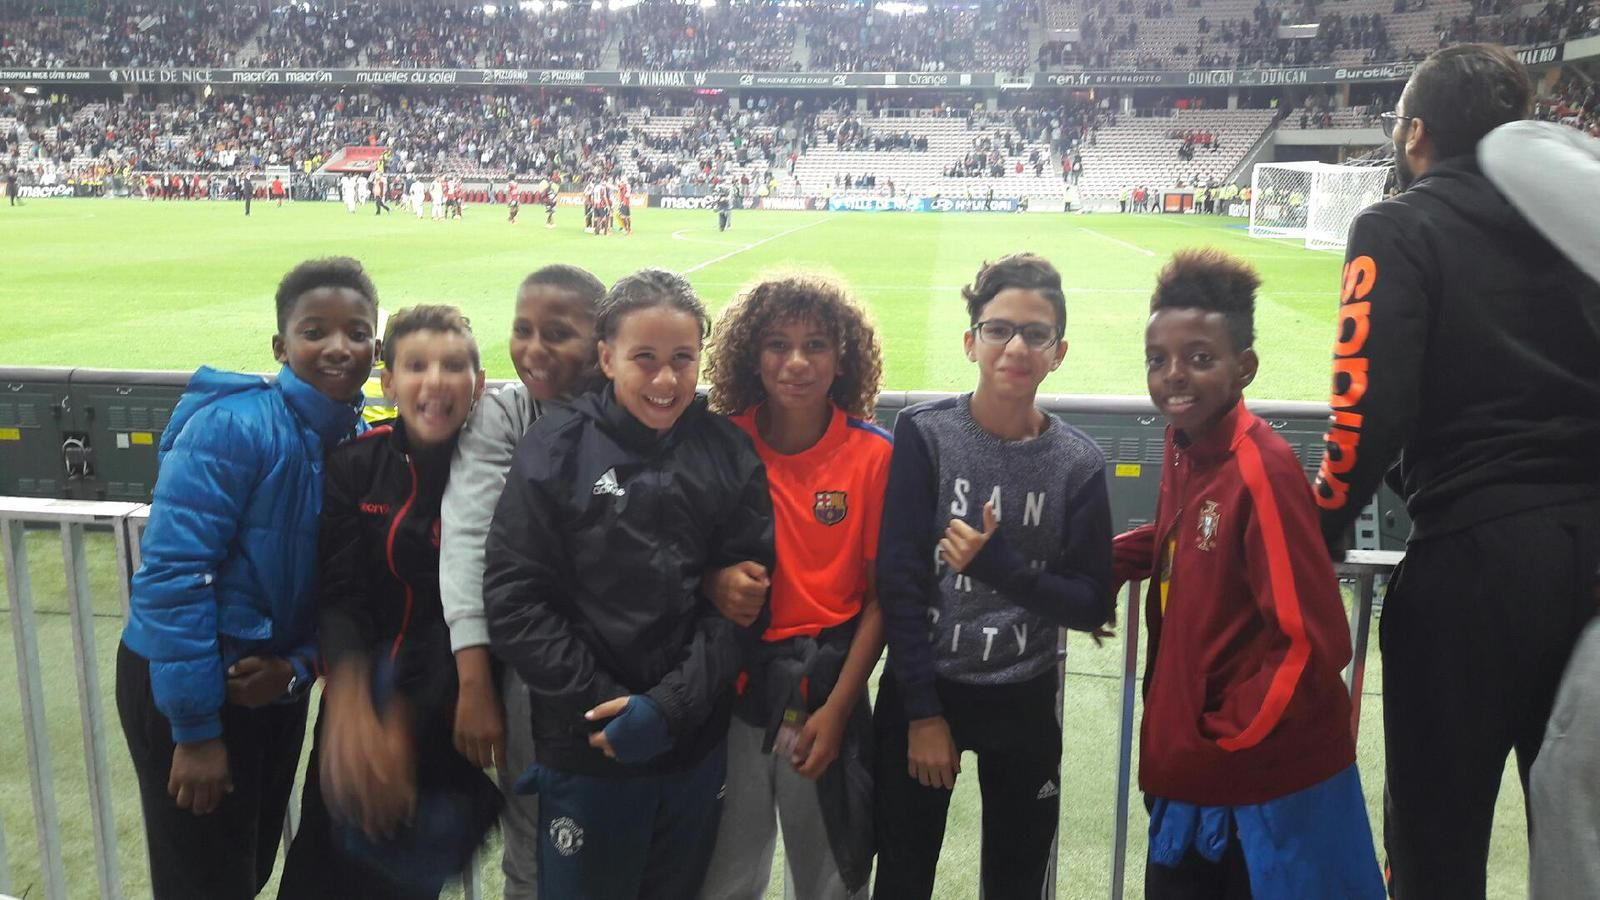 Sortie As Futsal au match Nice-Monaco